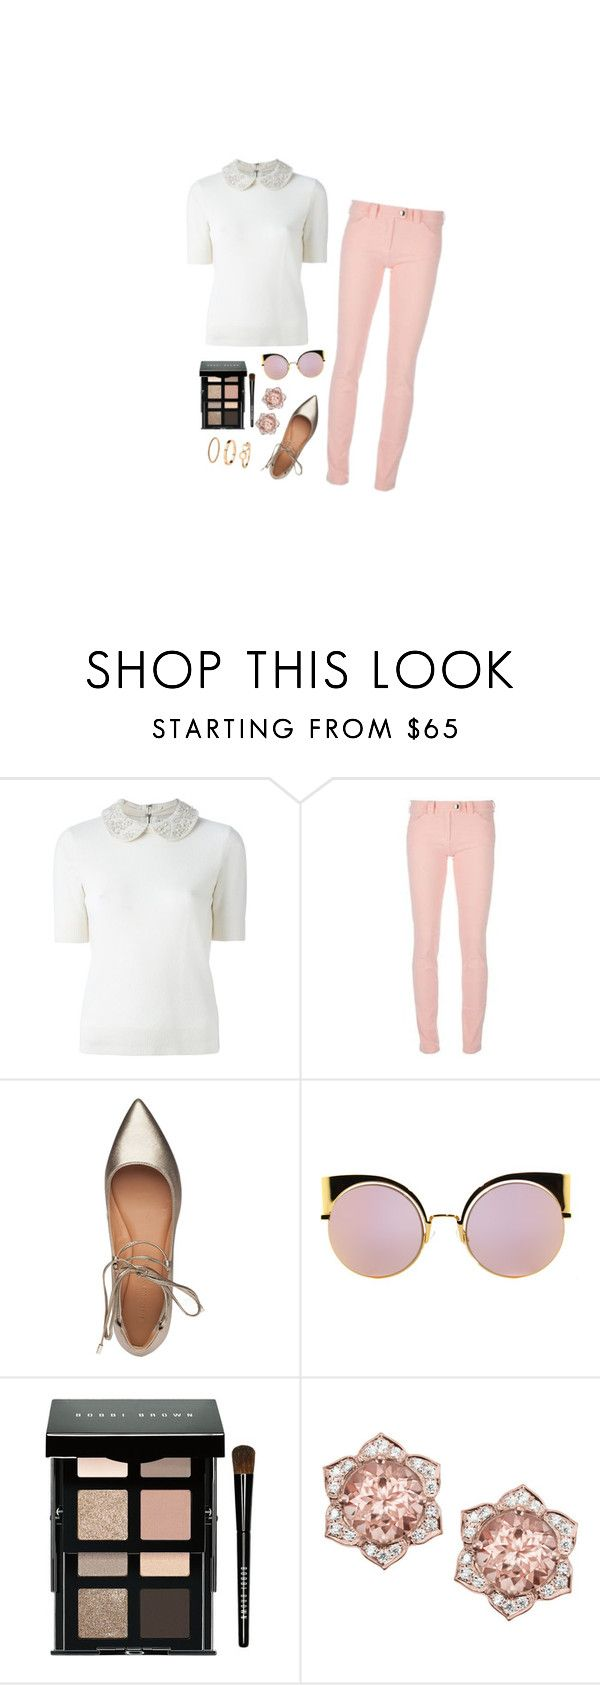 """""""💕"""" by b-pearl ❤ liked on Polyvore featuring Alice + Olivia, Balenciaga, Sigerson Morrison, Fendi, Bobbi Brown Cosmetics and H&M"""